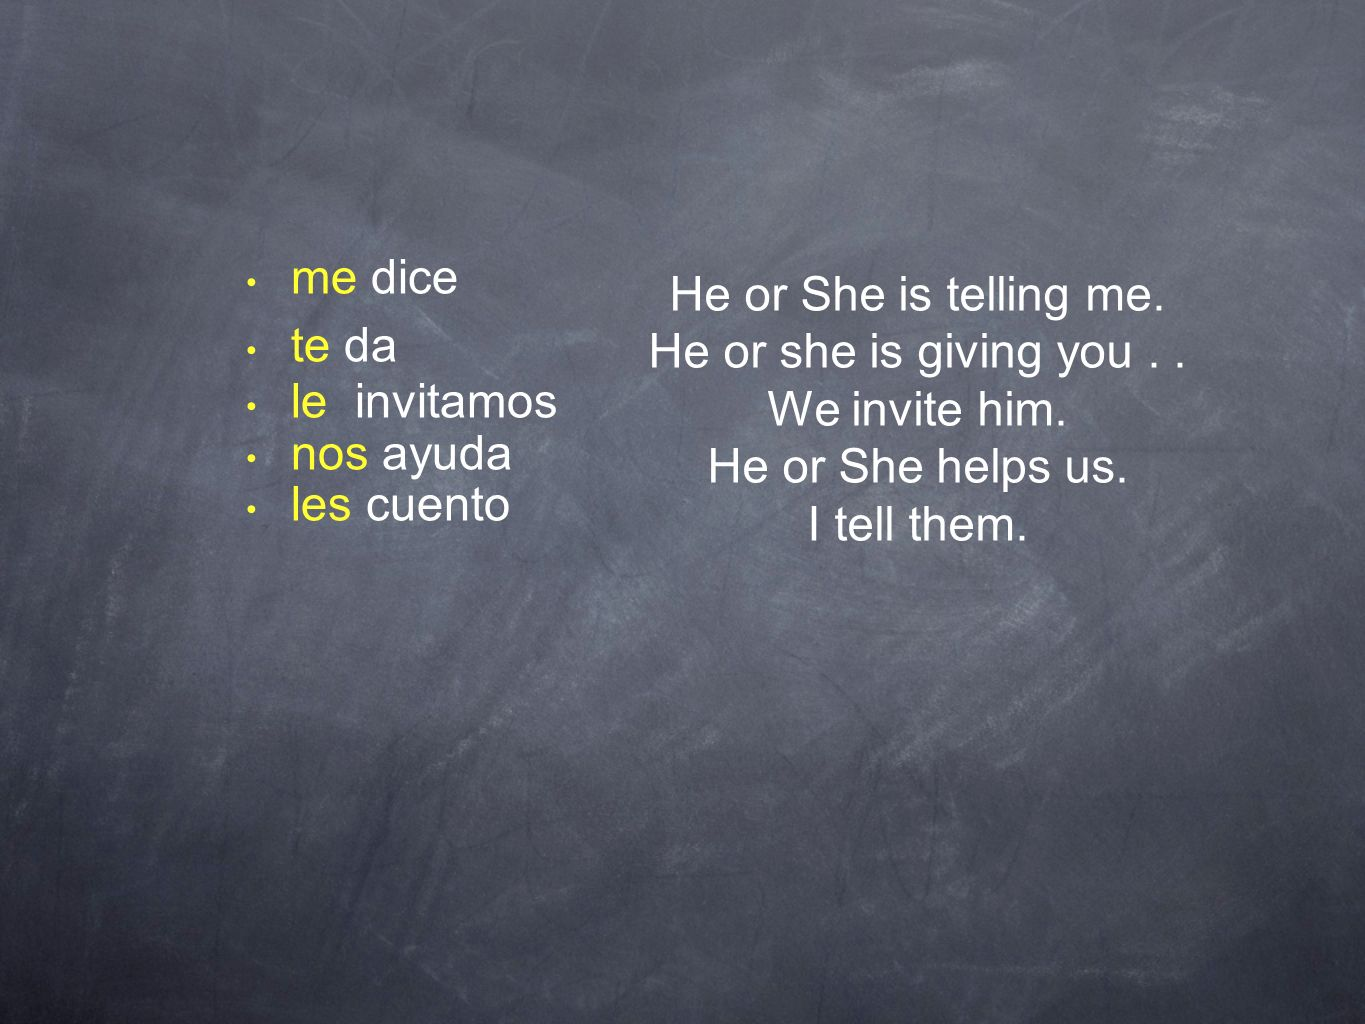 me dicete da. le invitamos. nos ayuda. les cuento. He or She is telling me. He or she is giving you . .